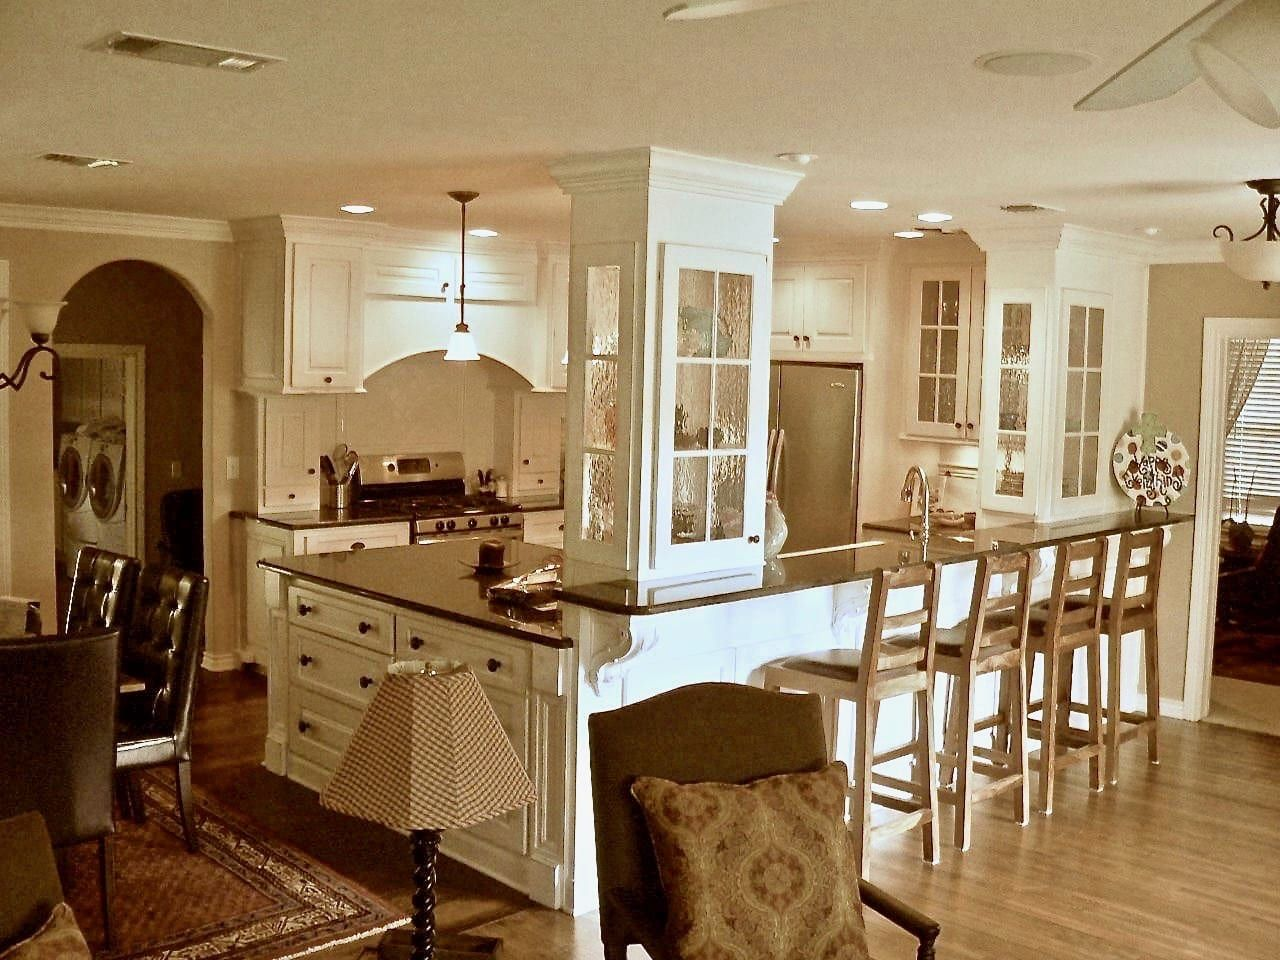 Sabrina Kitchen In 2020 Kitchen Remodel Installing Cabinets Custom Cabinetry